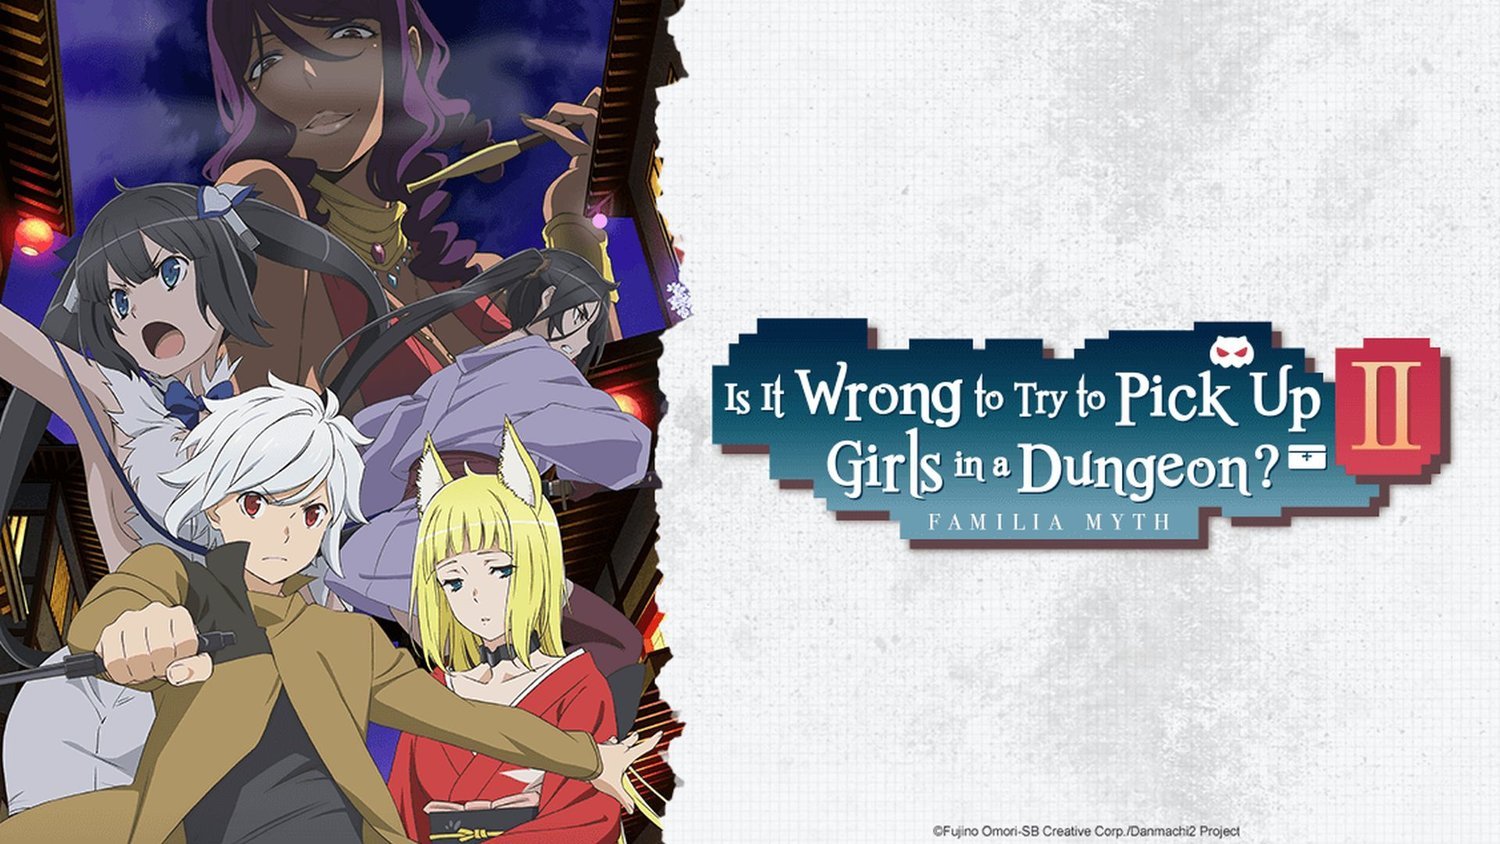 Hasil gambar untuk Is It Wrong to Try to Pick Up Girls in a Dungeon ii